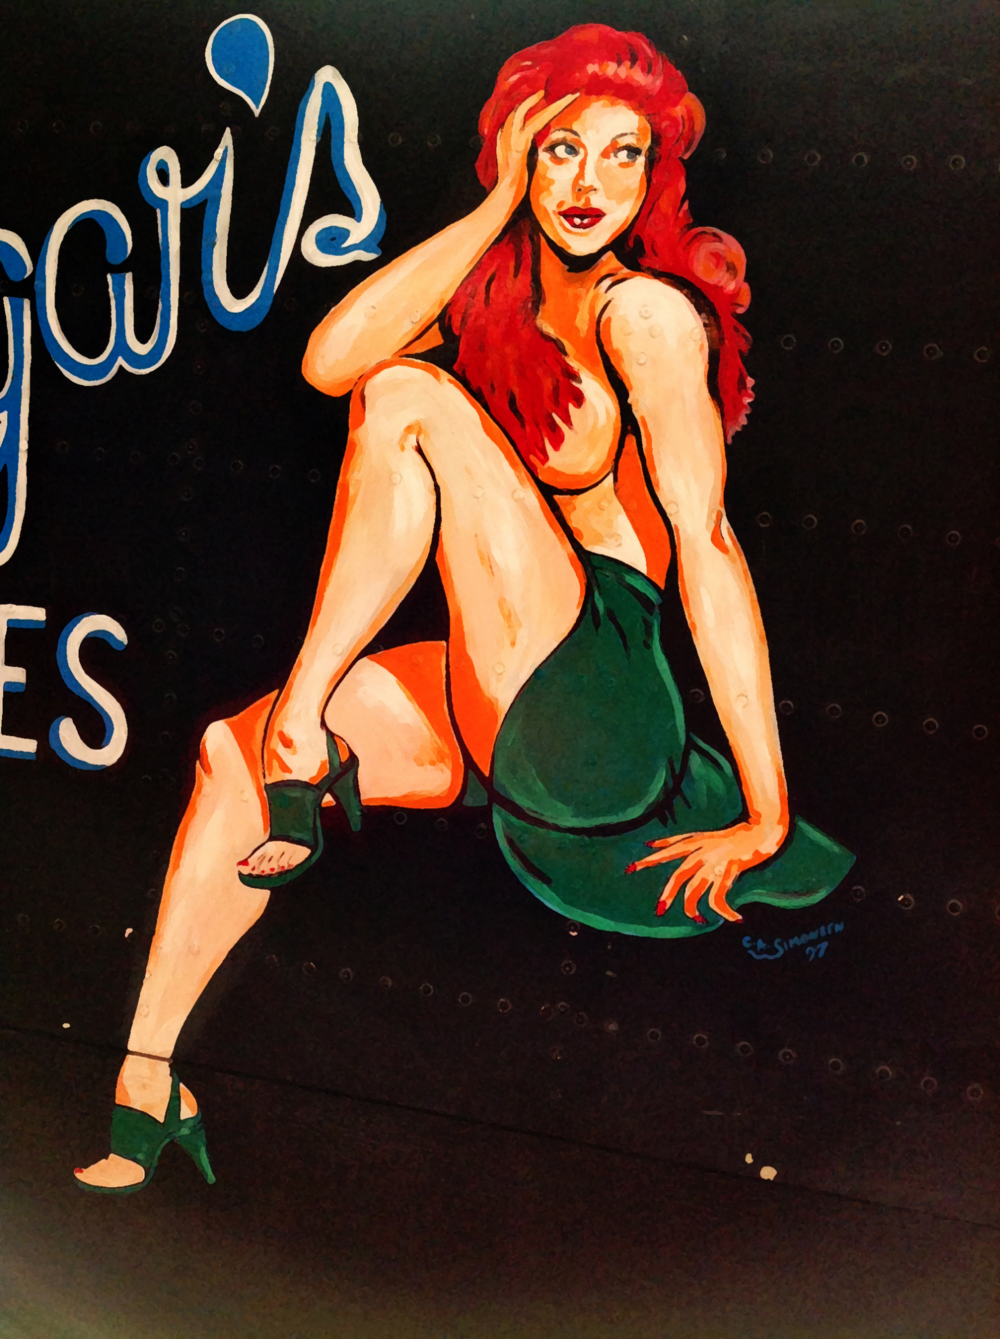 "Varga Pin-Up Girl painting on the side of a Lancaster WW2 bomber cockpit section replica in the Nanton Aviation Museum in Nanton, Alberta. The painting is a replica of what was on Lancaster KB-864 of the 428 Squadron RCAF. The figure is based on the popular ""Varga"" pin-up girl who was featured in the January 1945 edition of Esquire magazine. The 'S' is for Sugar-Sugar's Blues a popular wartime dance tune at the time."